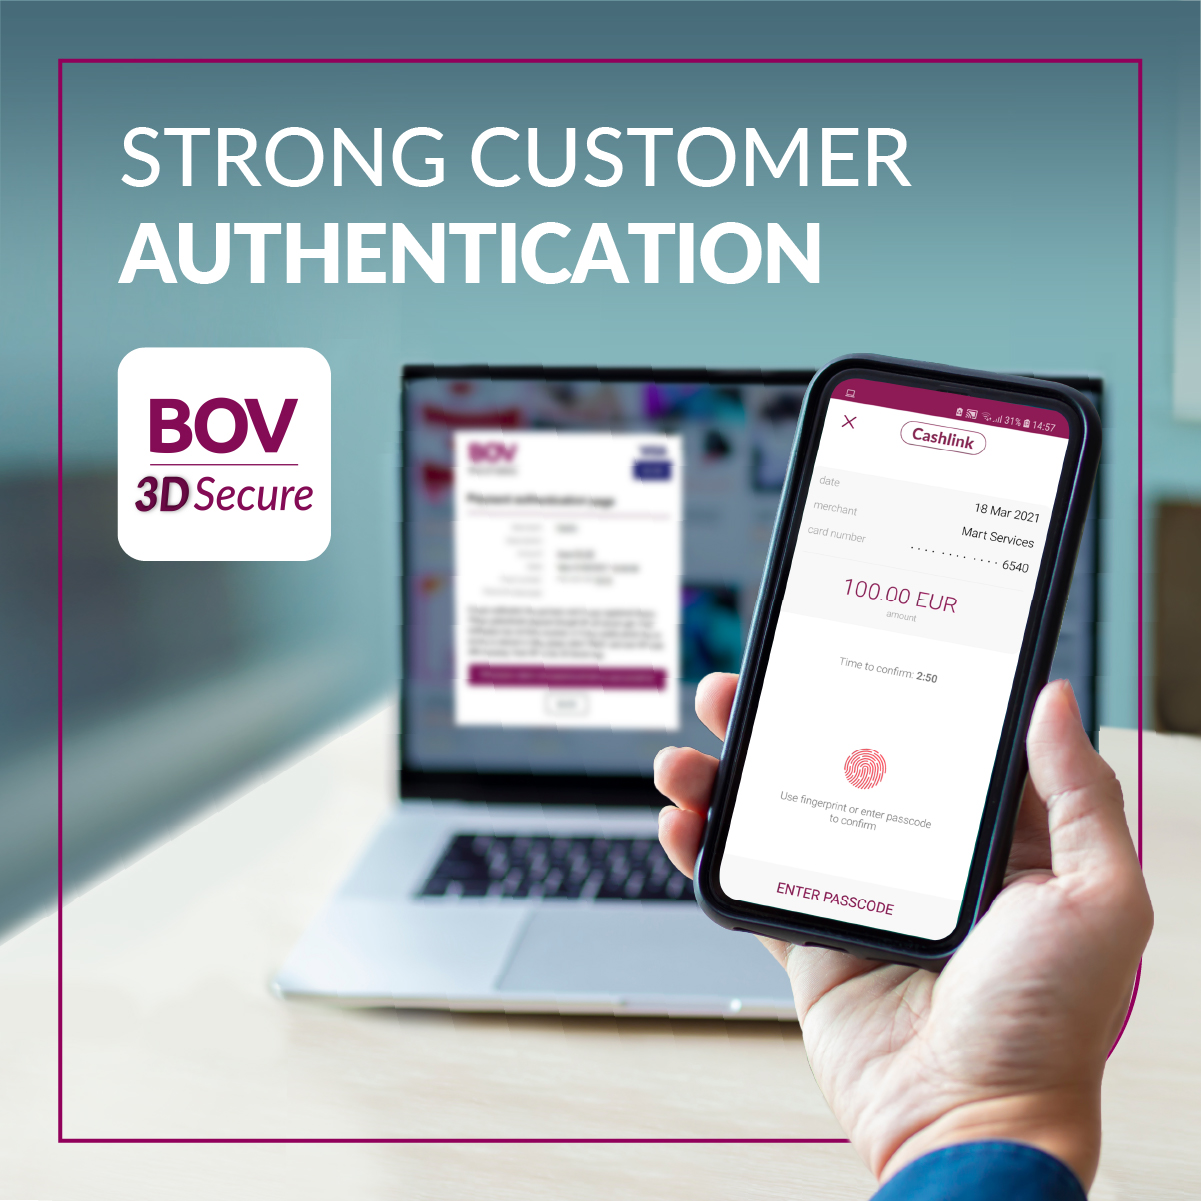 Bank of Valletta launches 3D Secure App for safer online shopping